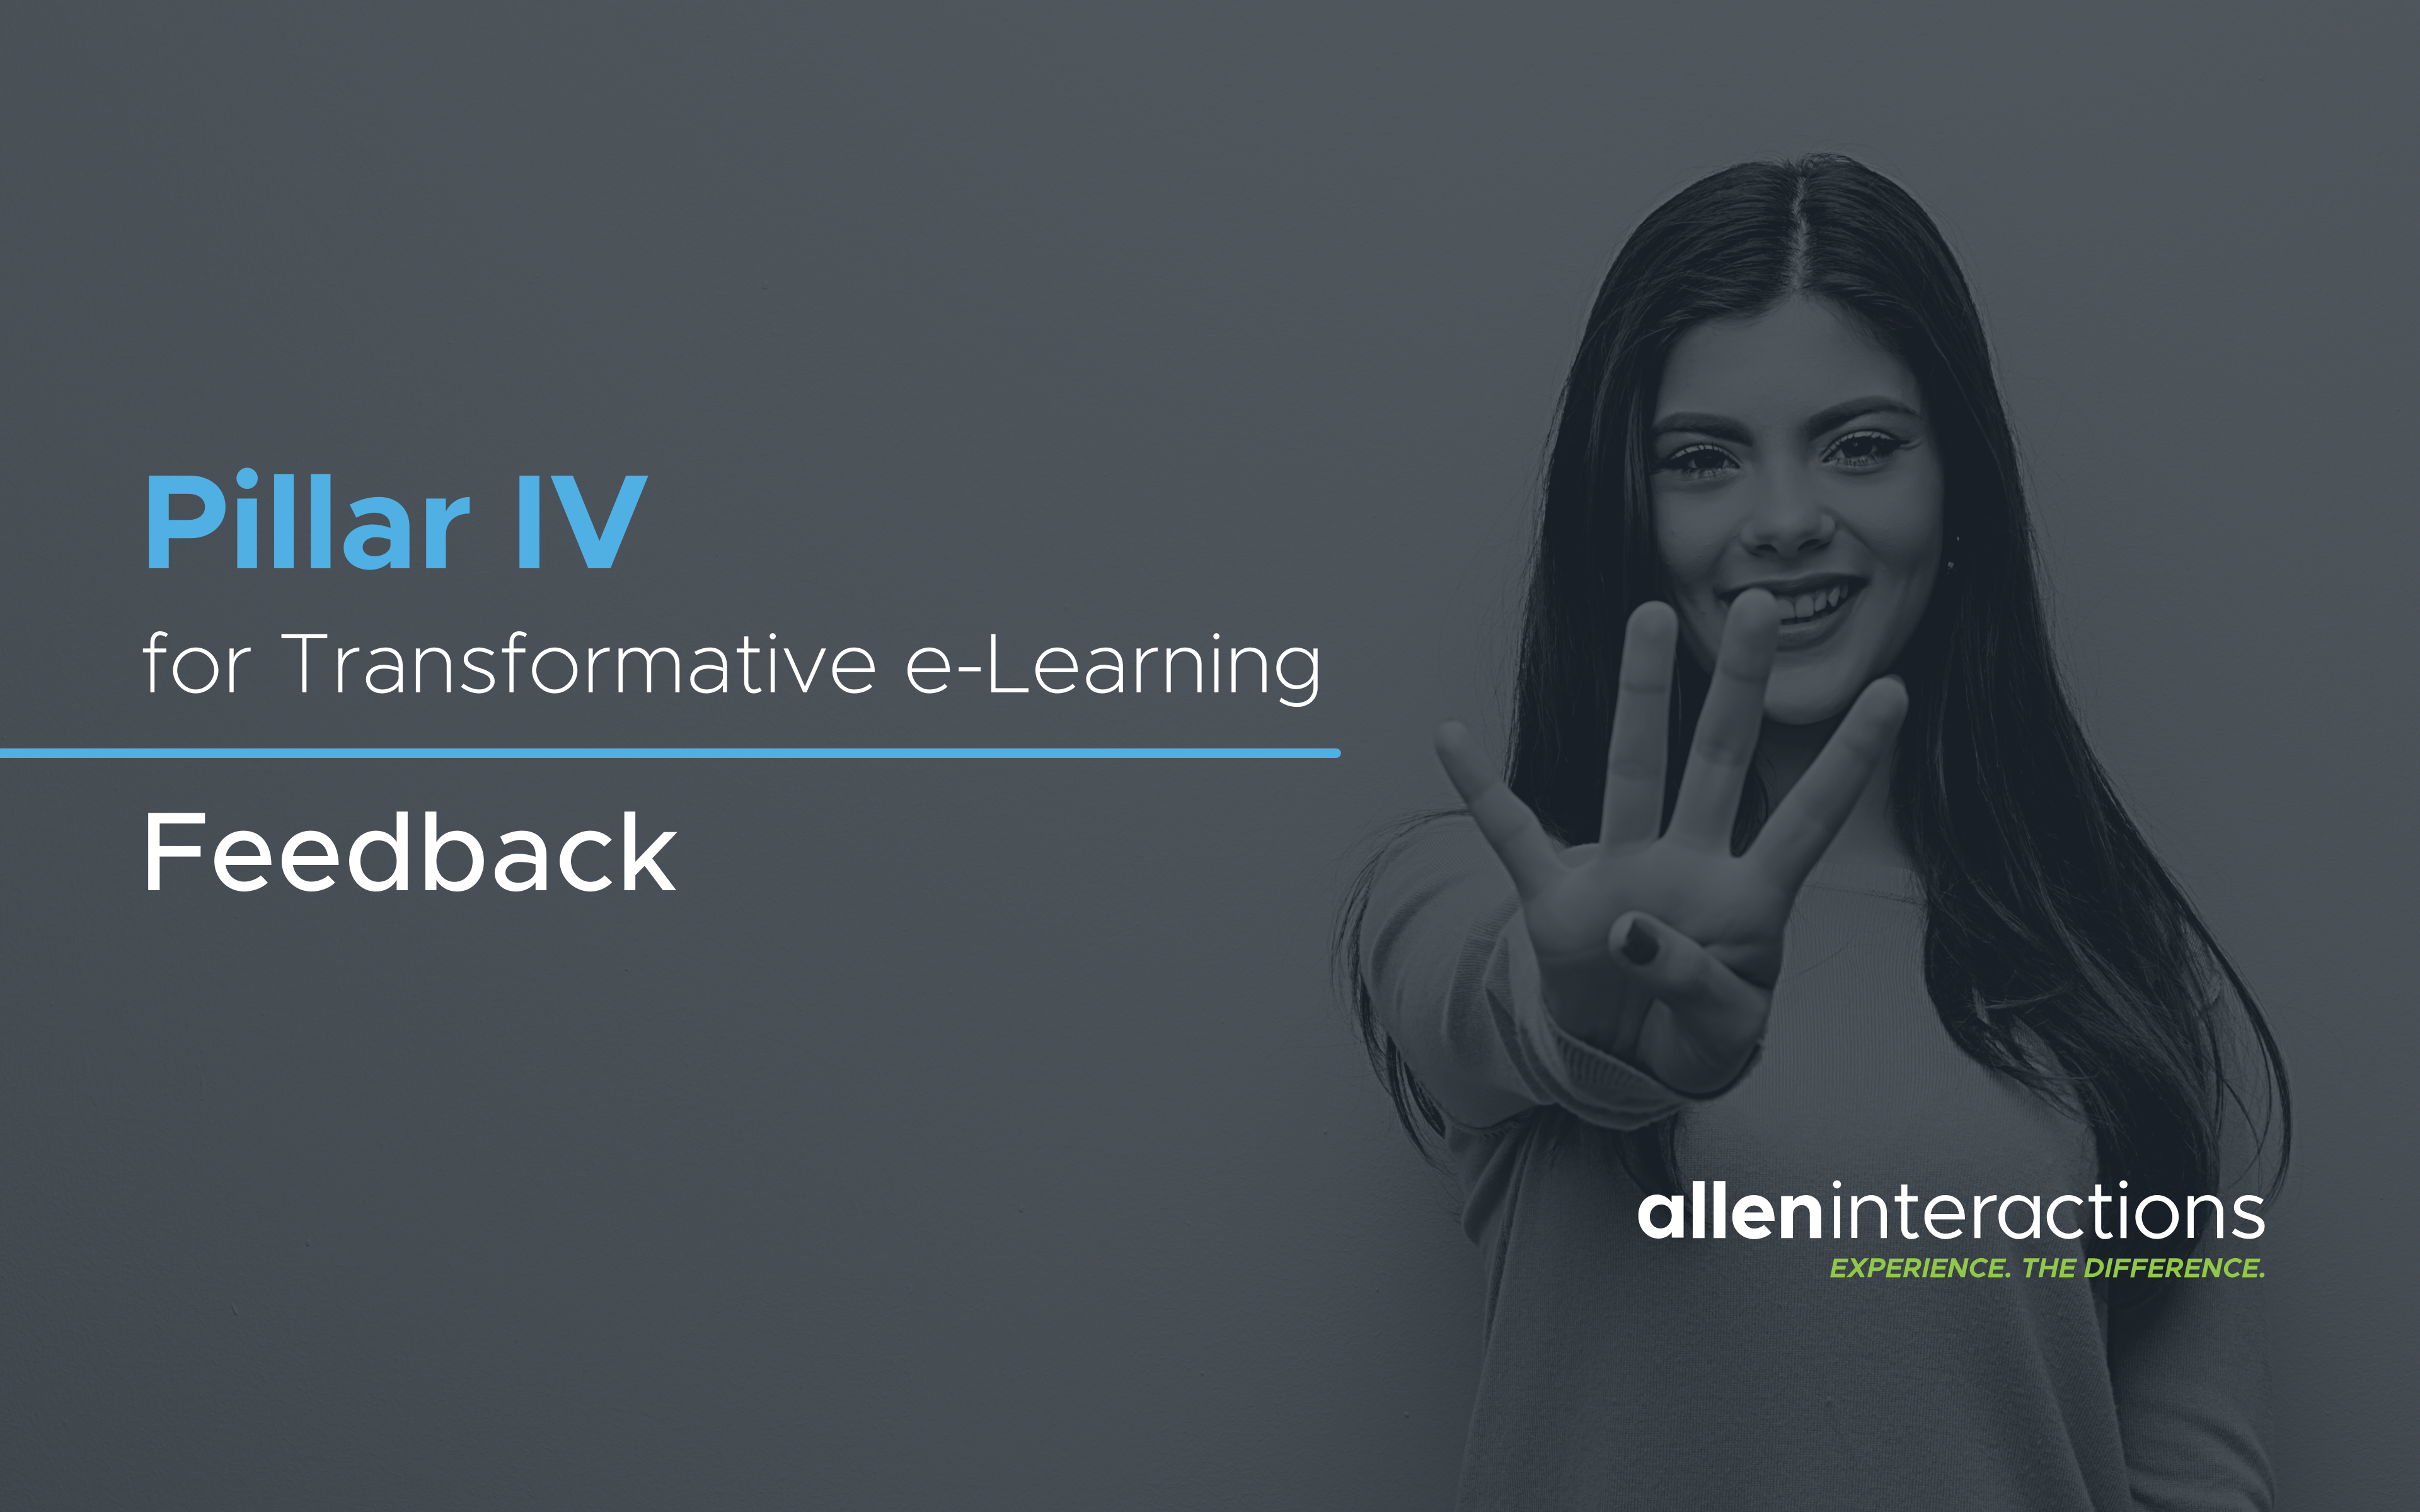 Pillar IV for Transformative e-Learning Instructional Design: Feedback